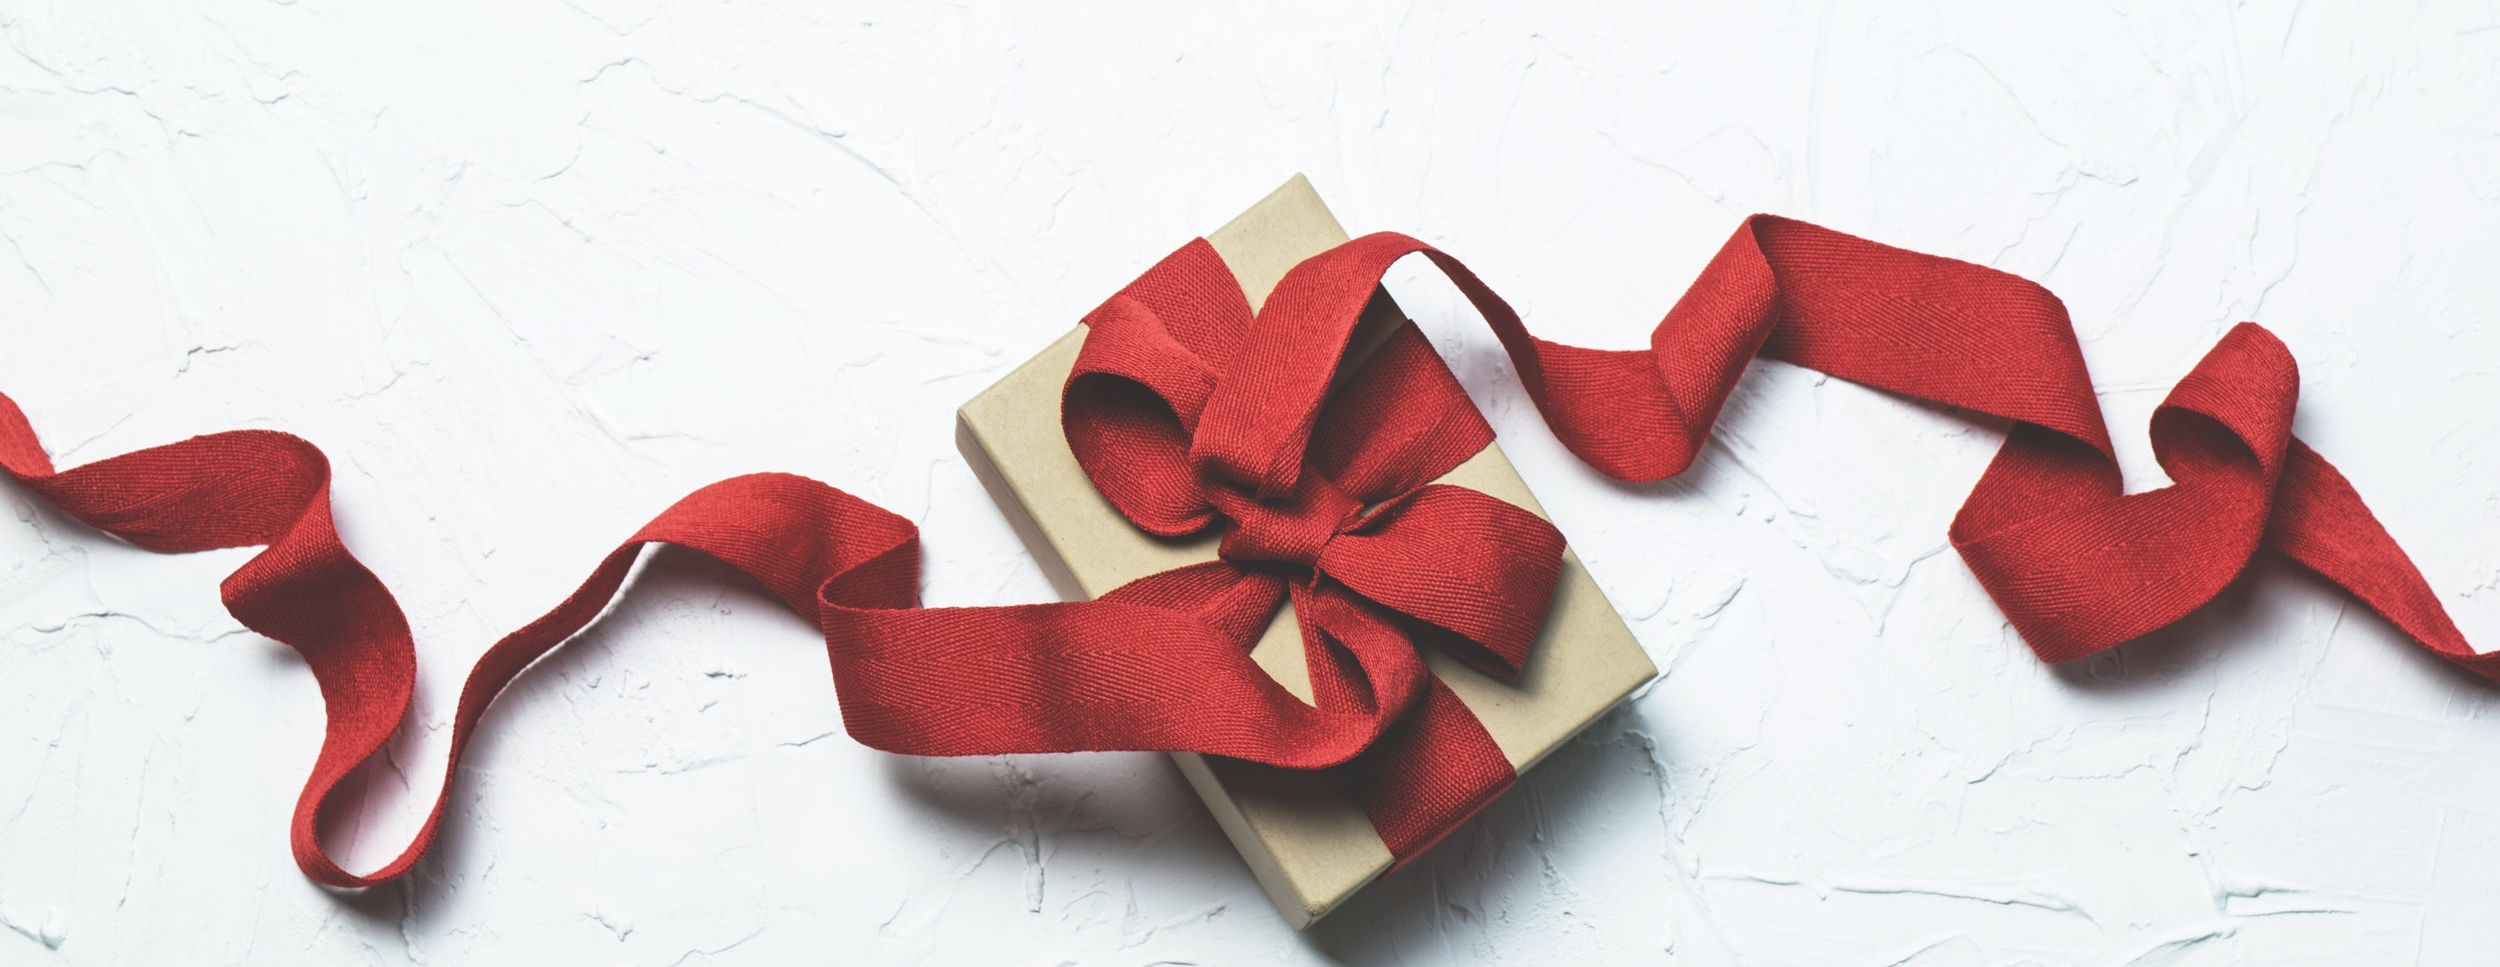 A Minimalist Holiday Gift Giving Guide for College Students